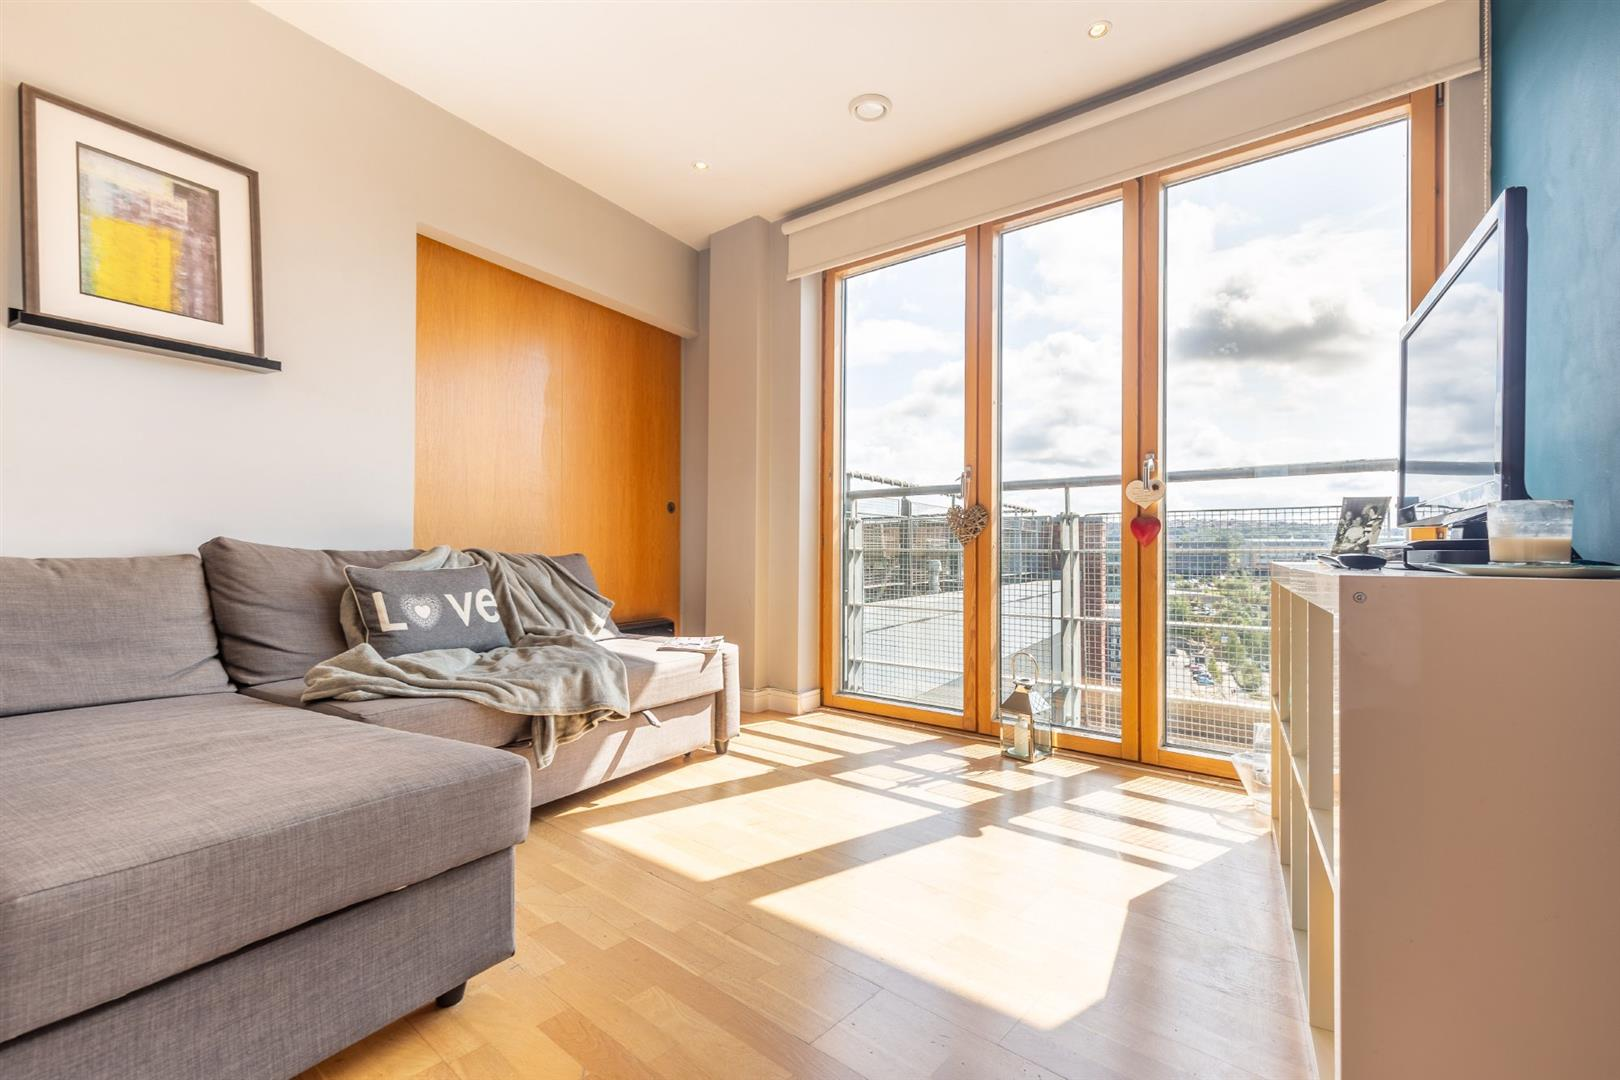 2 bed penthouse for sale in Newcastle Upon Tyne, NE1 3BB 8